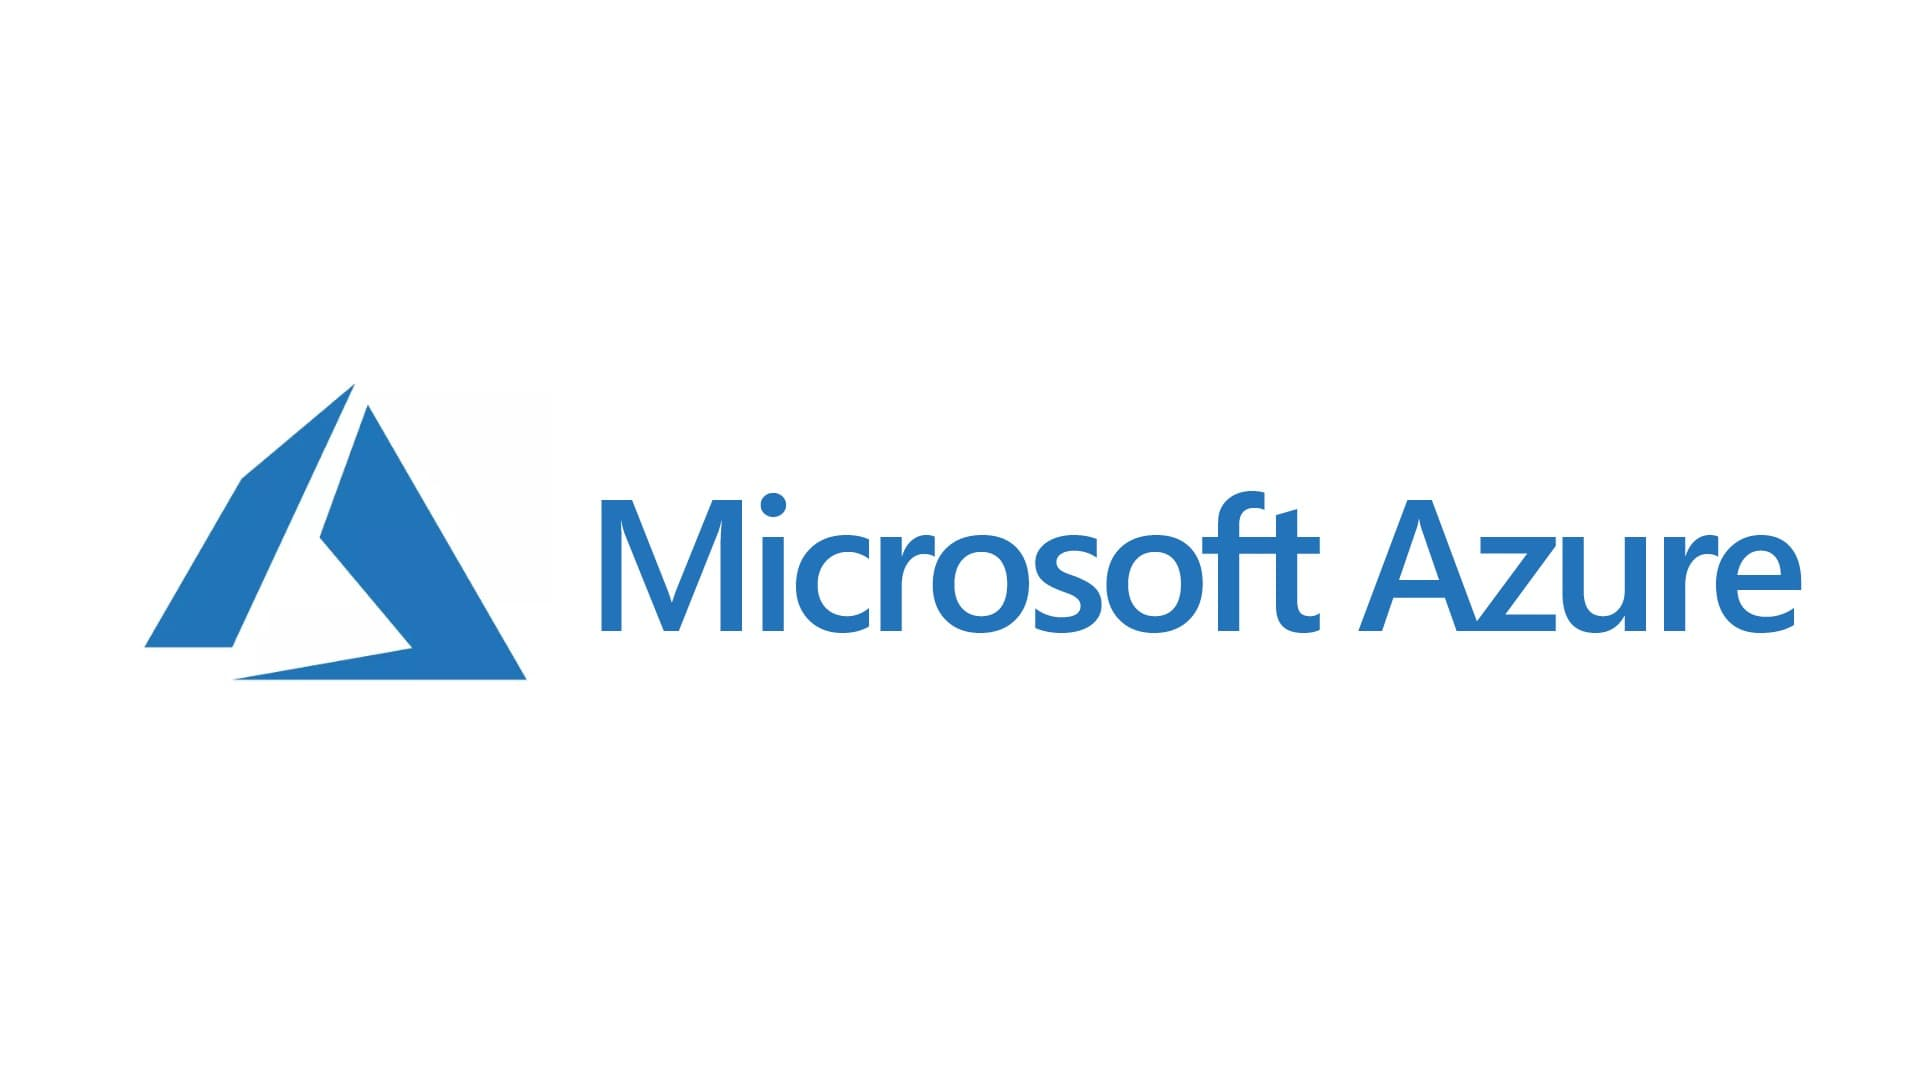 Microsoft Azure is a robust cloud computing service